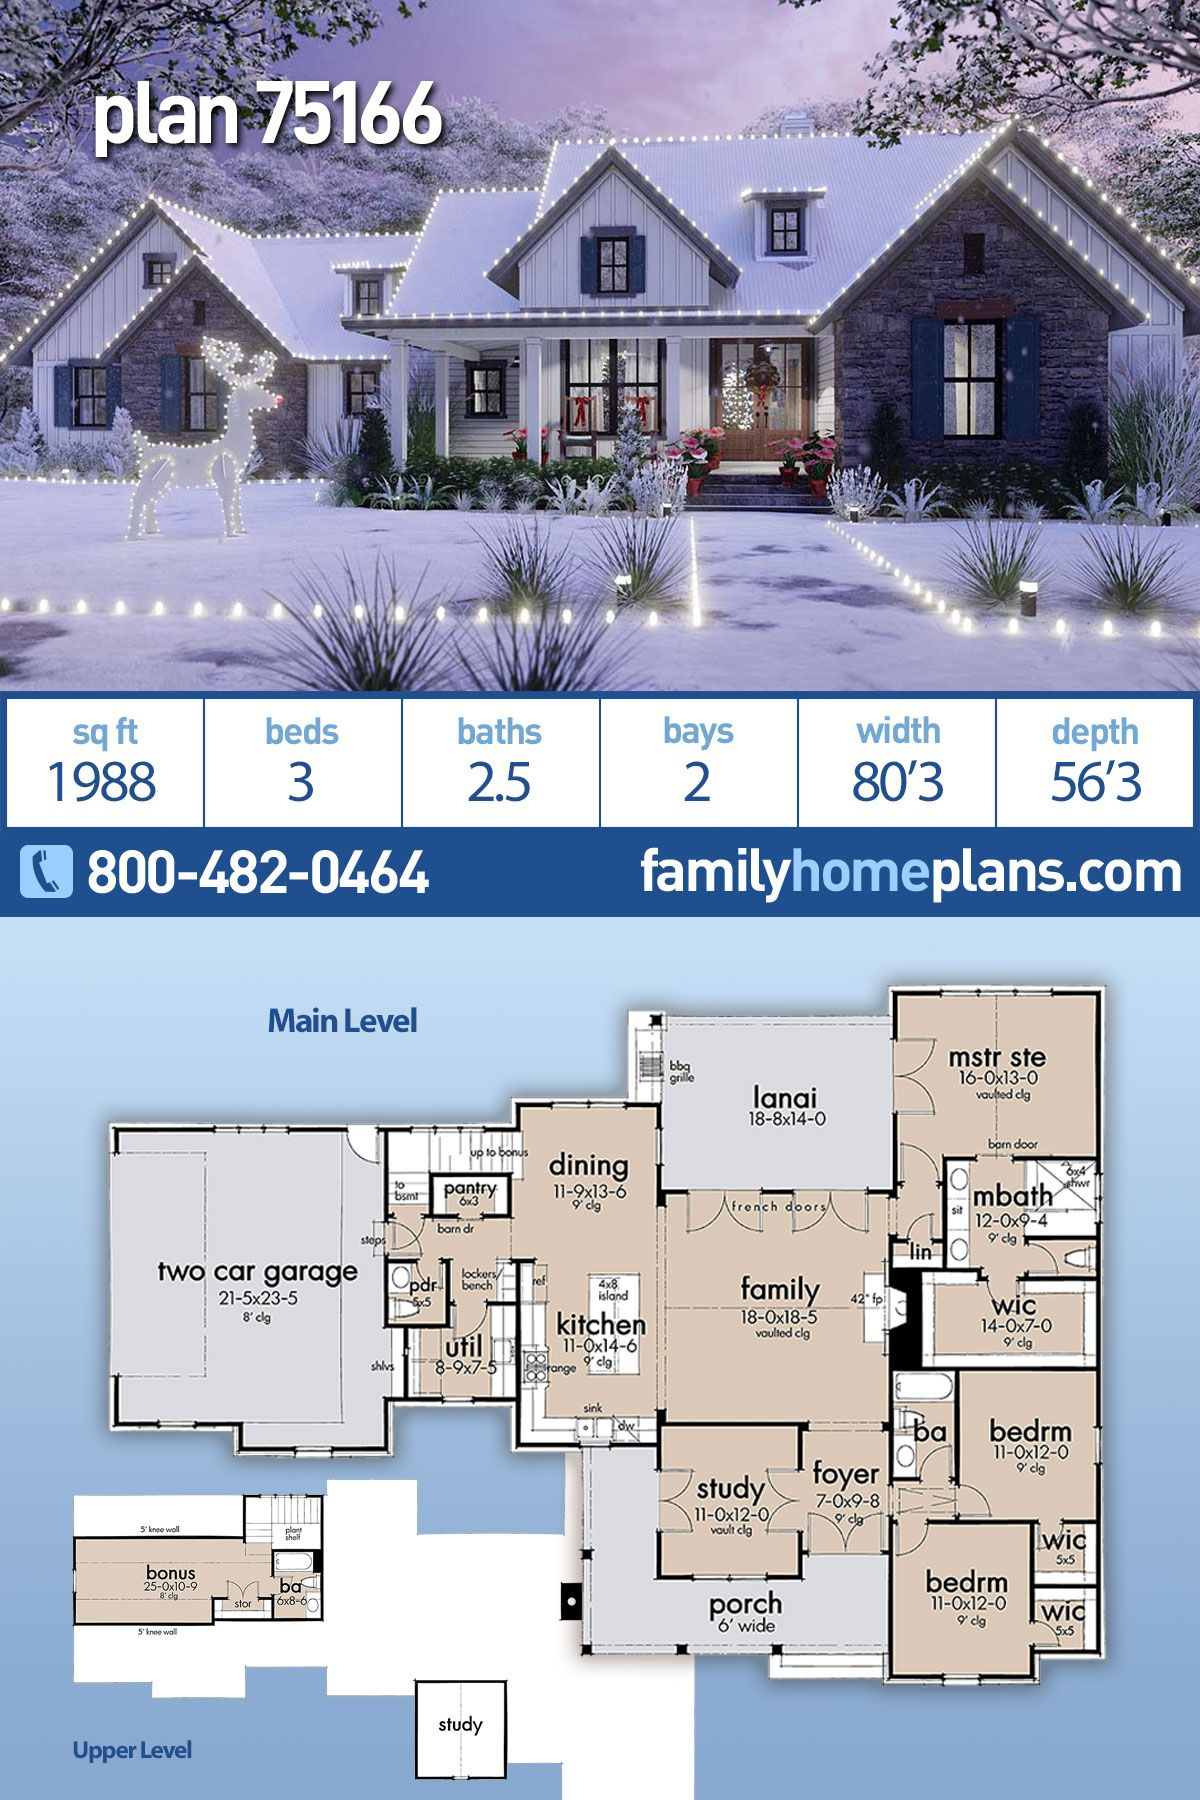 Traditional Style House Plan 75166 With 3 Bed 3 Bath 2 Car Garage House Plans Farmhouse New House Plans Family House Plans